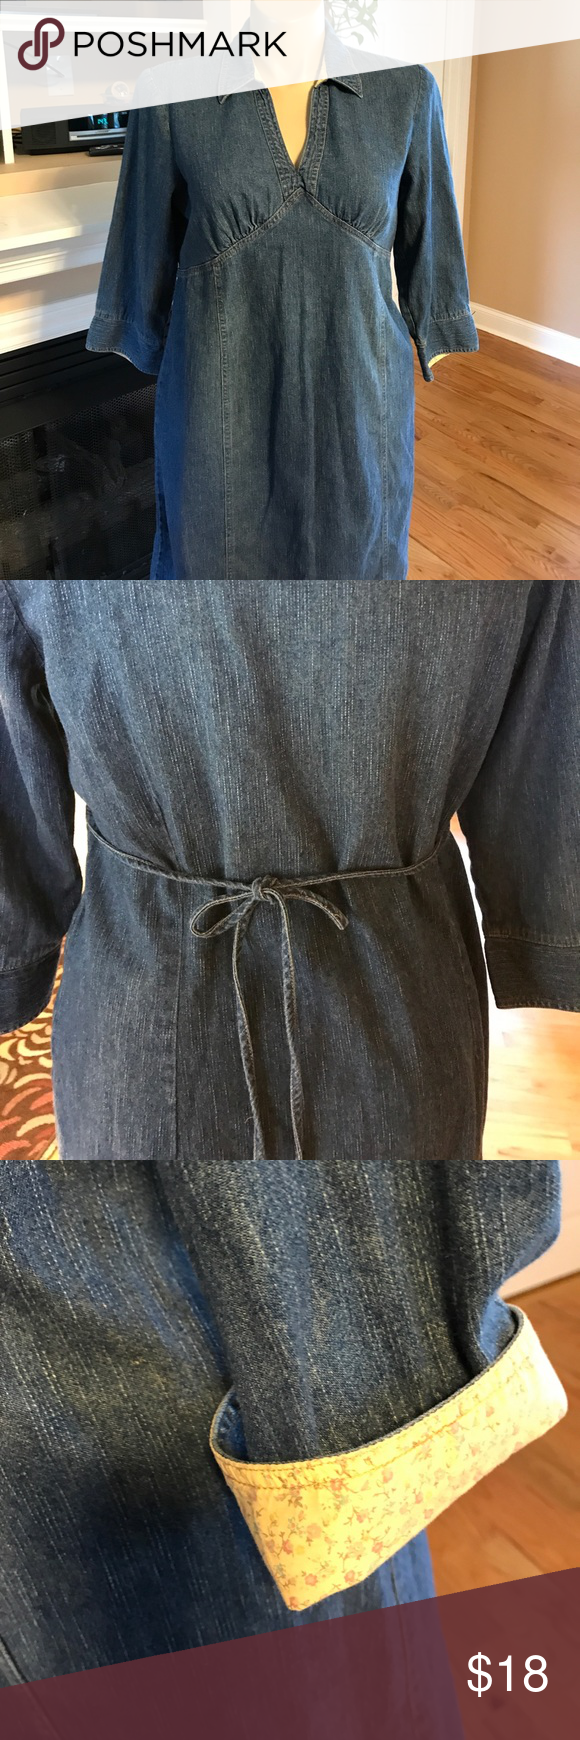 Motherhood Maternity Dress Size large denim maternity dress. Ties in the back. Contrasting color in the cuff. Motherhood Maternity Dresses